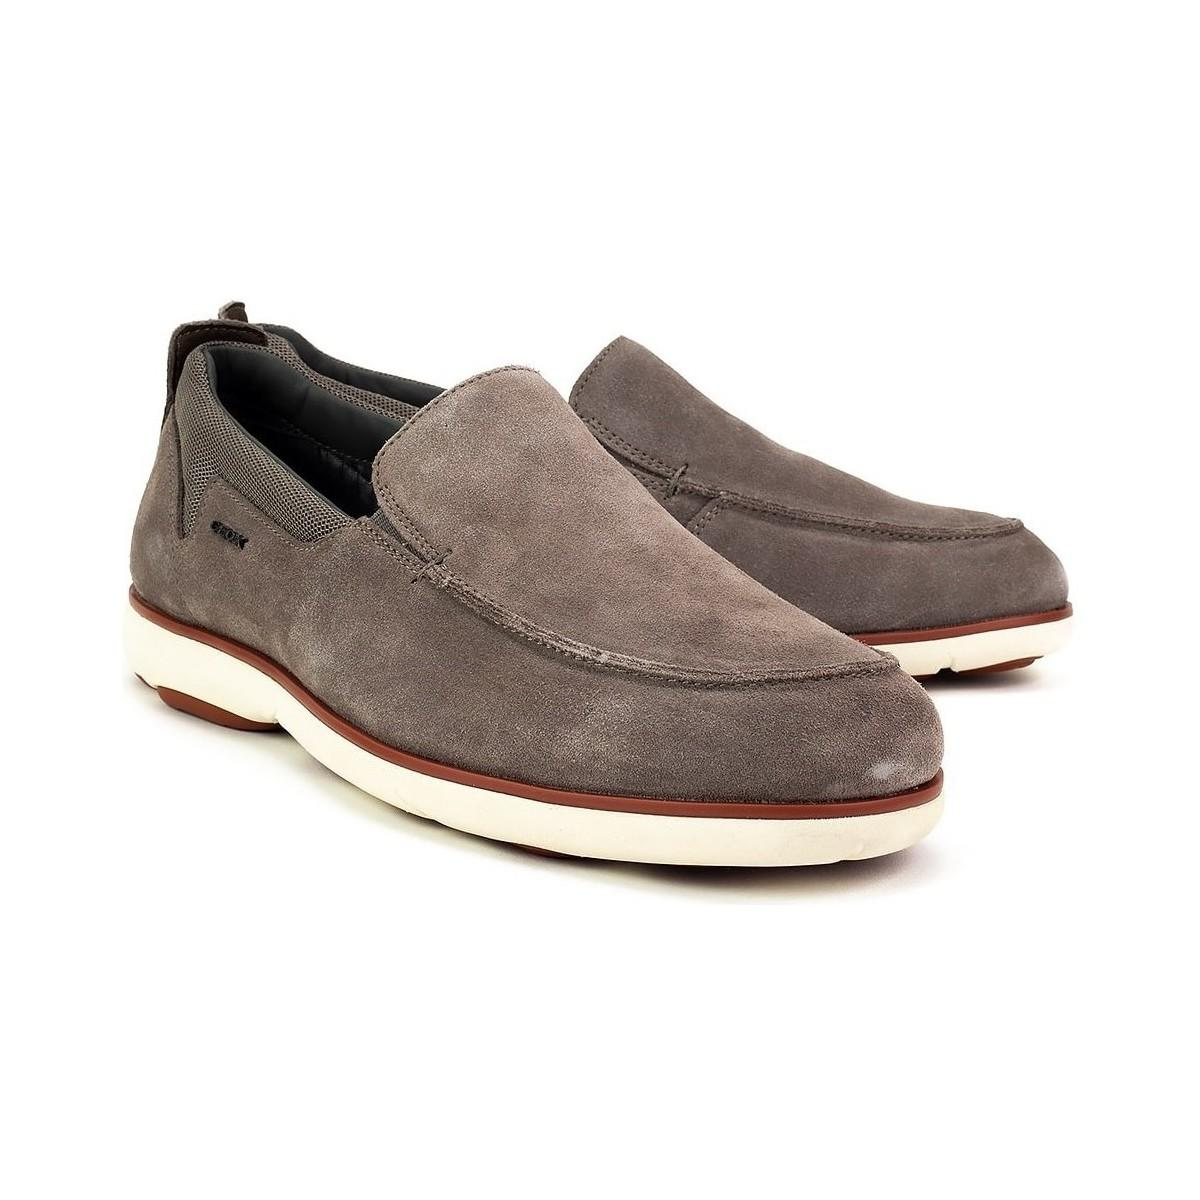 0a92d441295e1 Geox - Gray Nebula Men's Loafers / Casual Shoes In Grey for Men - Lyst.  View fullscreen